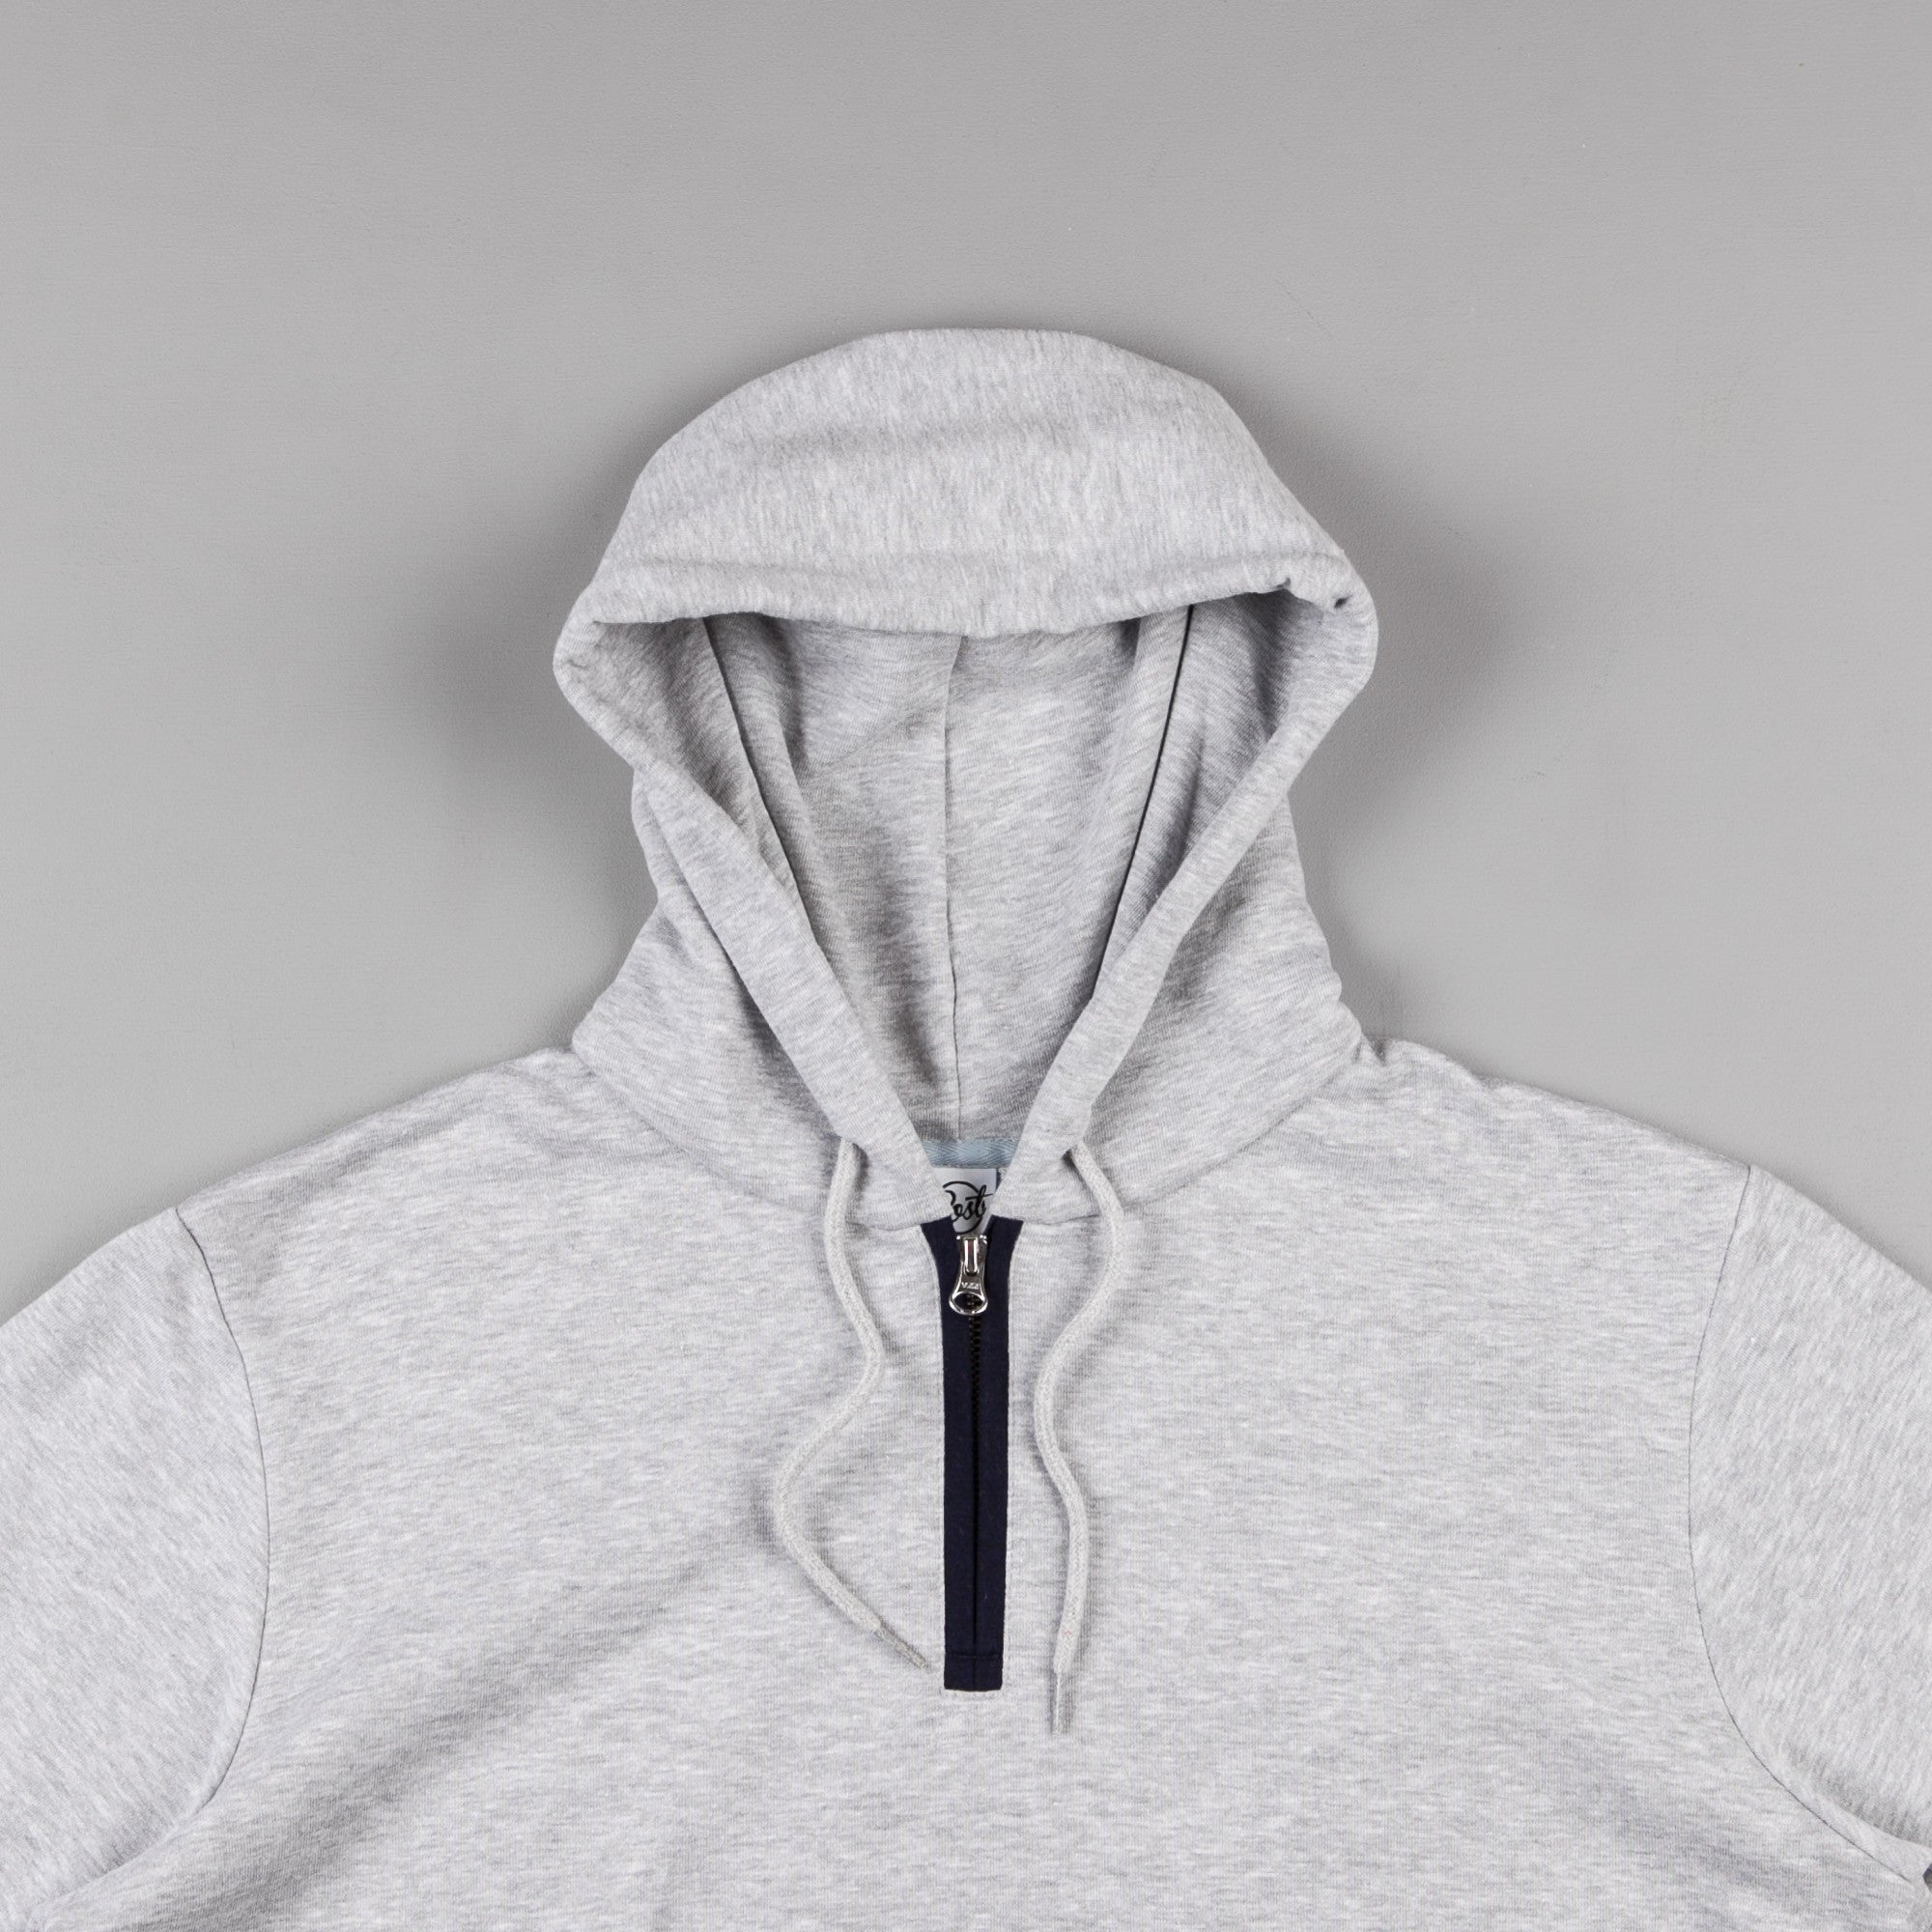 Post Details Decades Ball Back Hooded Sweatshirt - Heather Grey